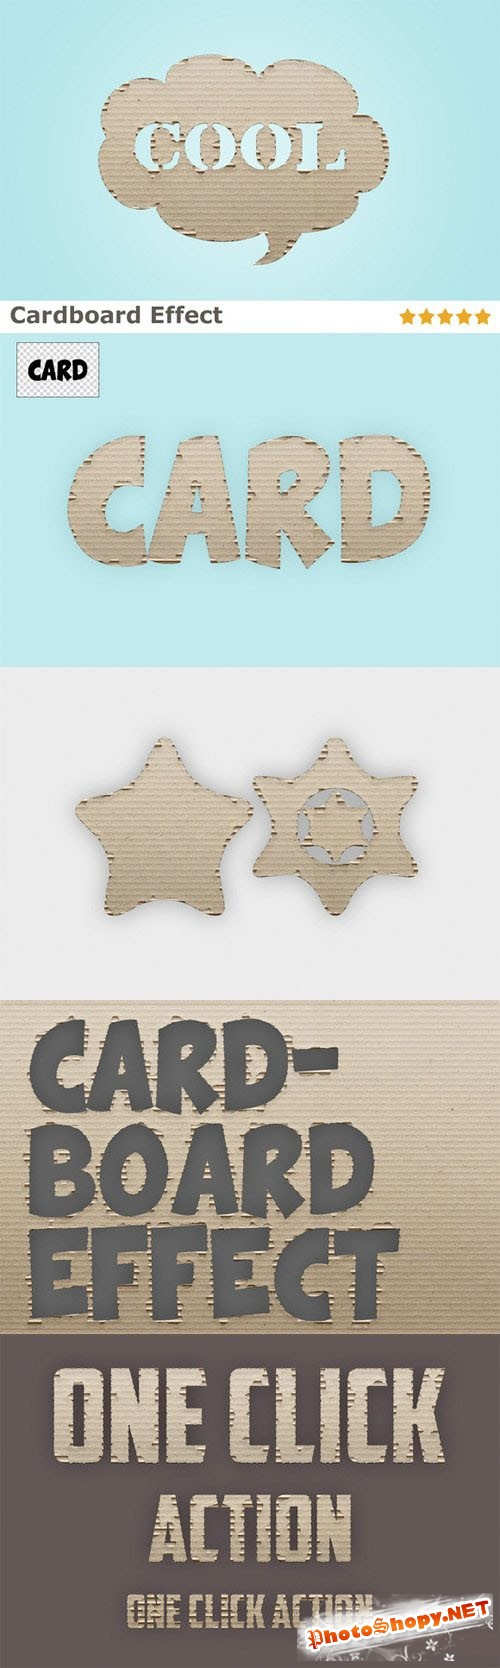 Cardboard Effect Action - CreativeMarket